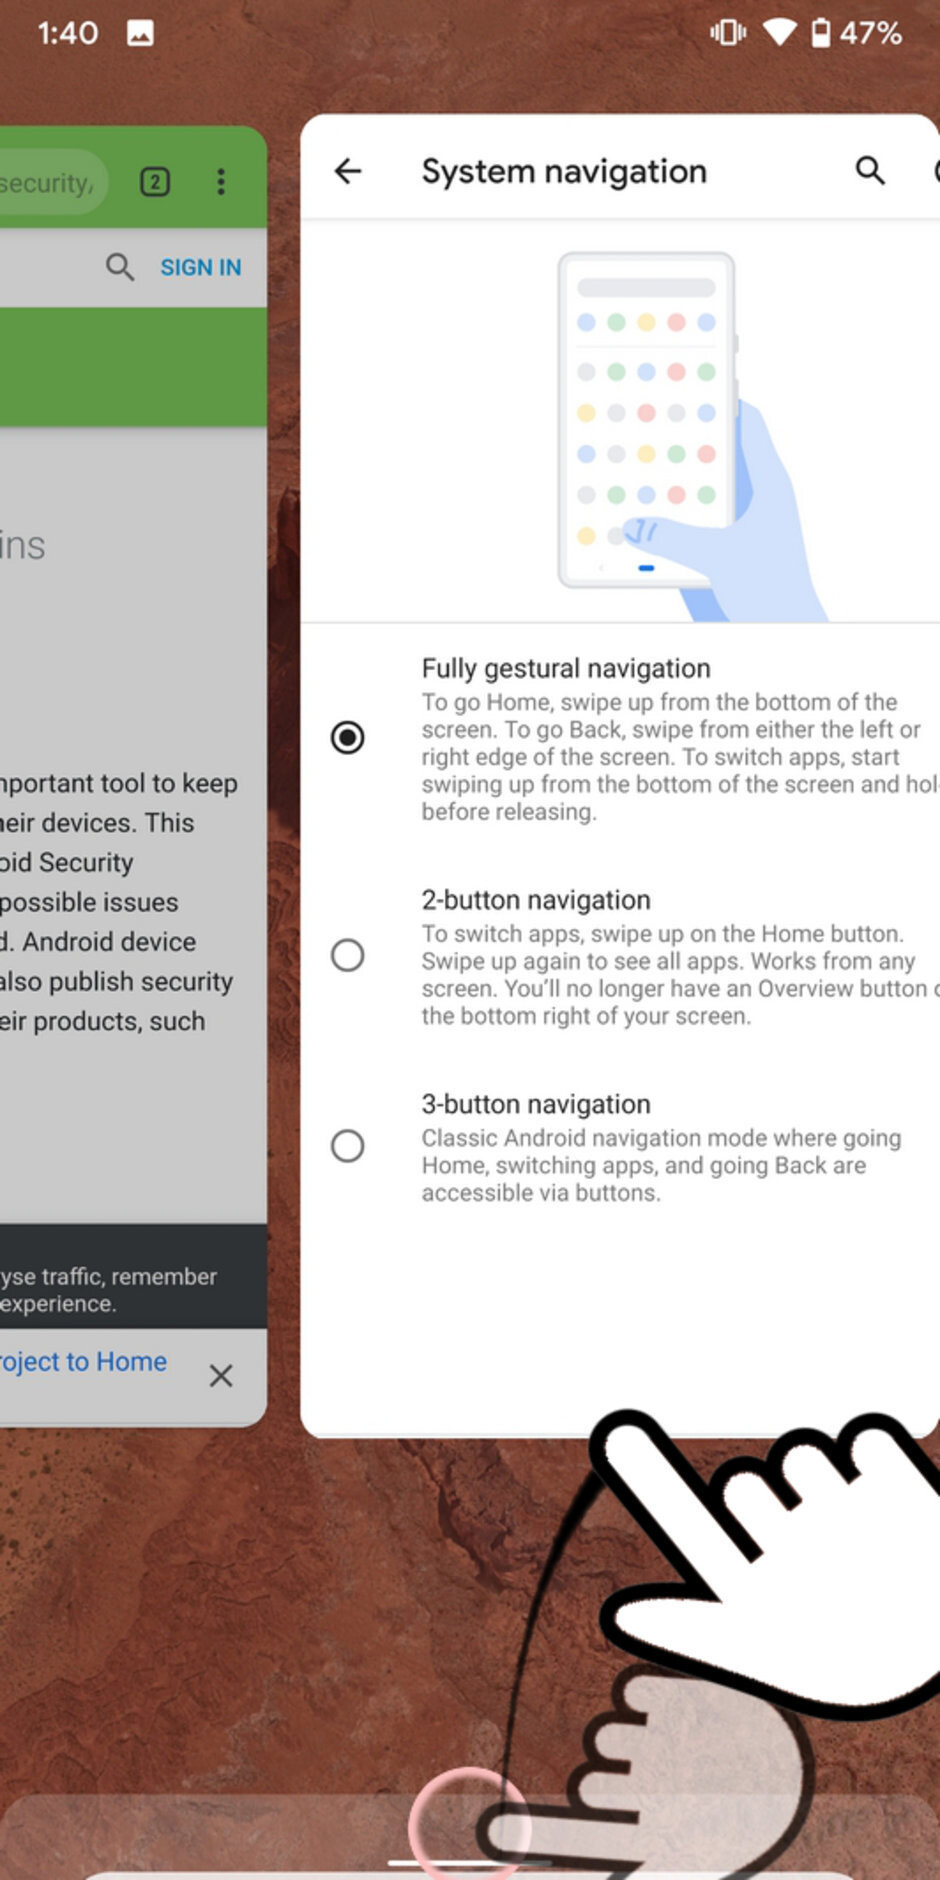 Google's iPhone-like gestures will become mandatory in Android Q